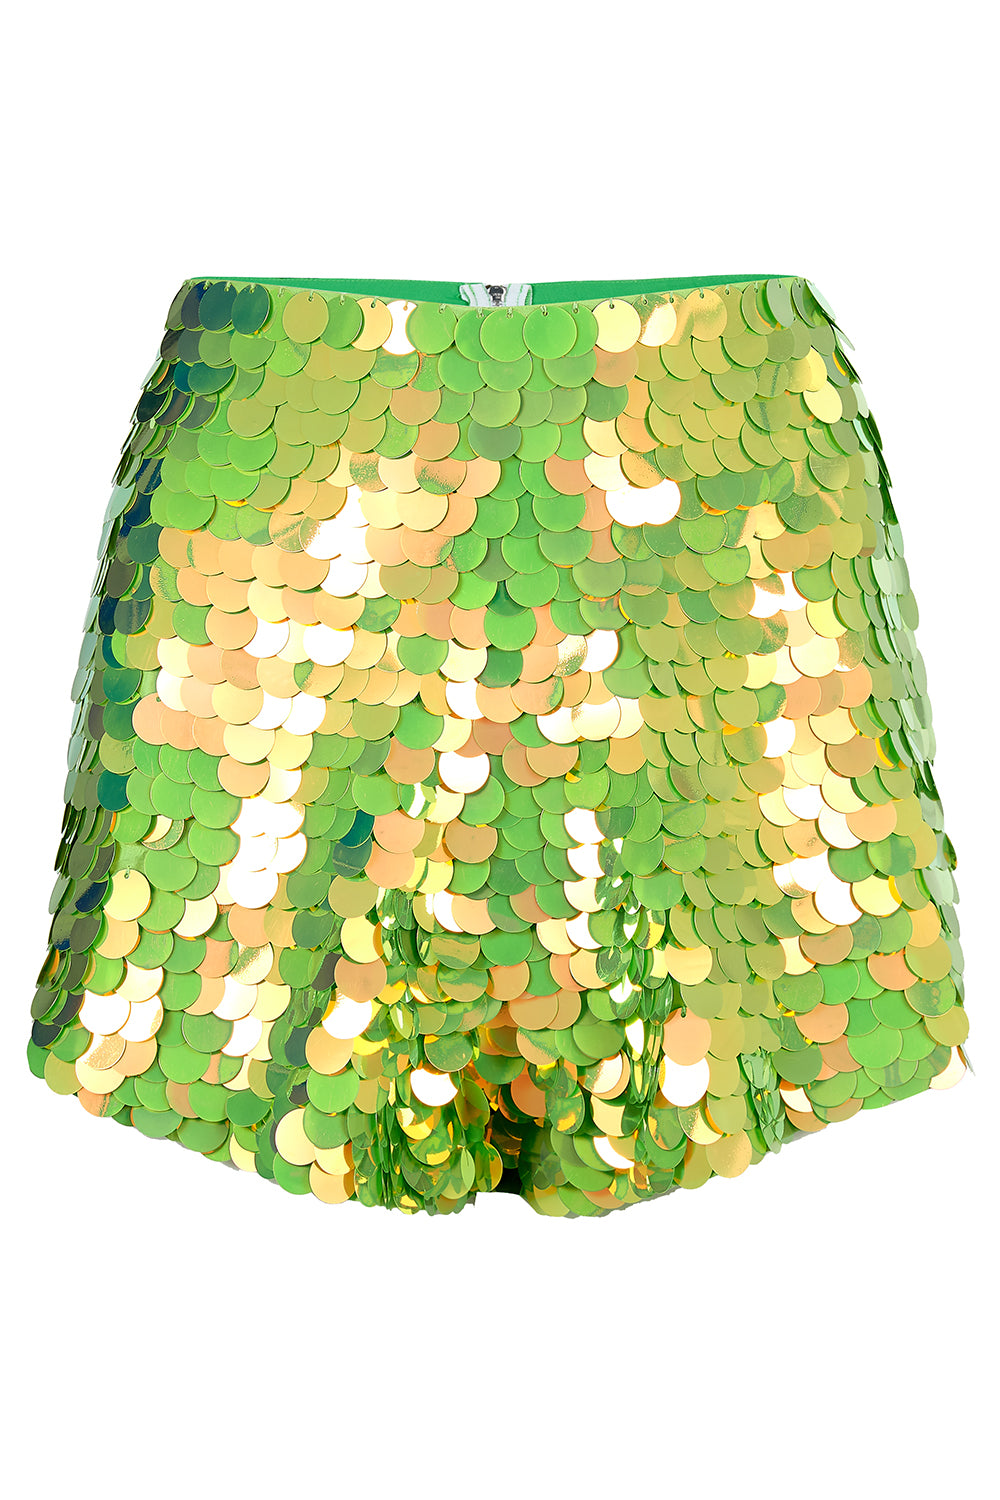 JUNO SEQUIN SHORTS - ANGELICA